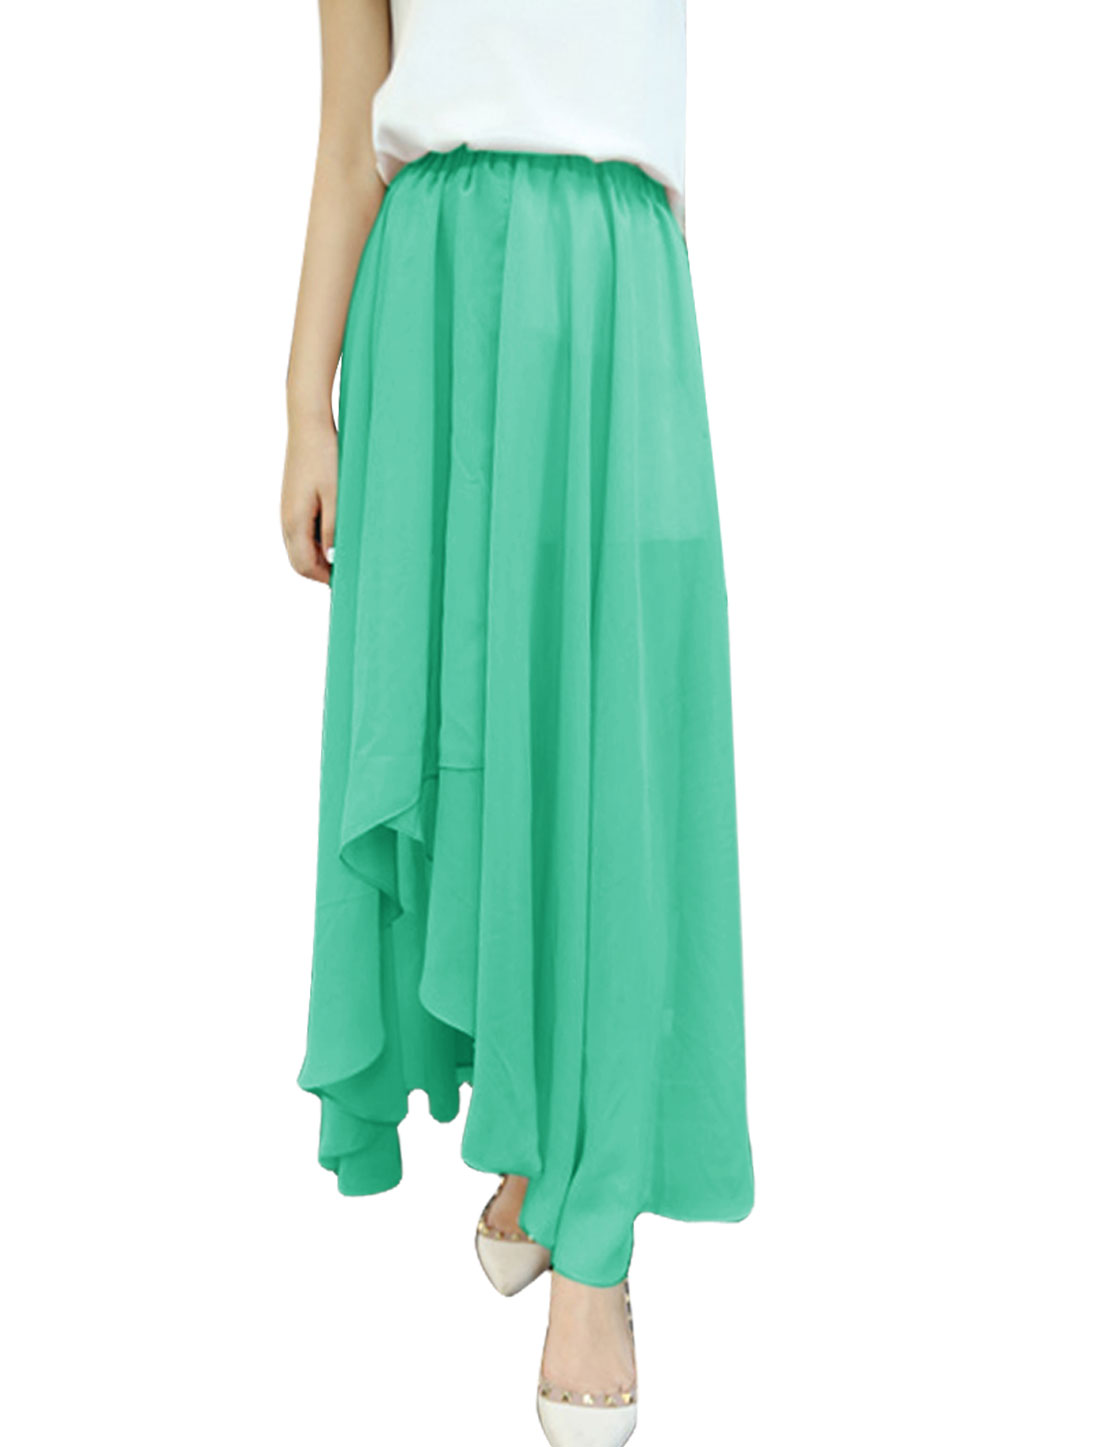 Stylish Mint Color Irregular Hem Ddesign Long Chiffon Skirt XS for Lady